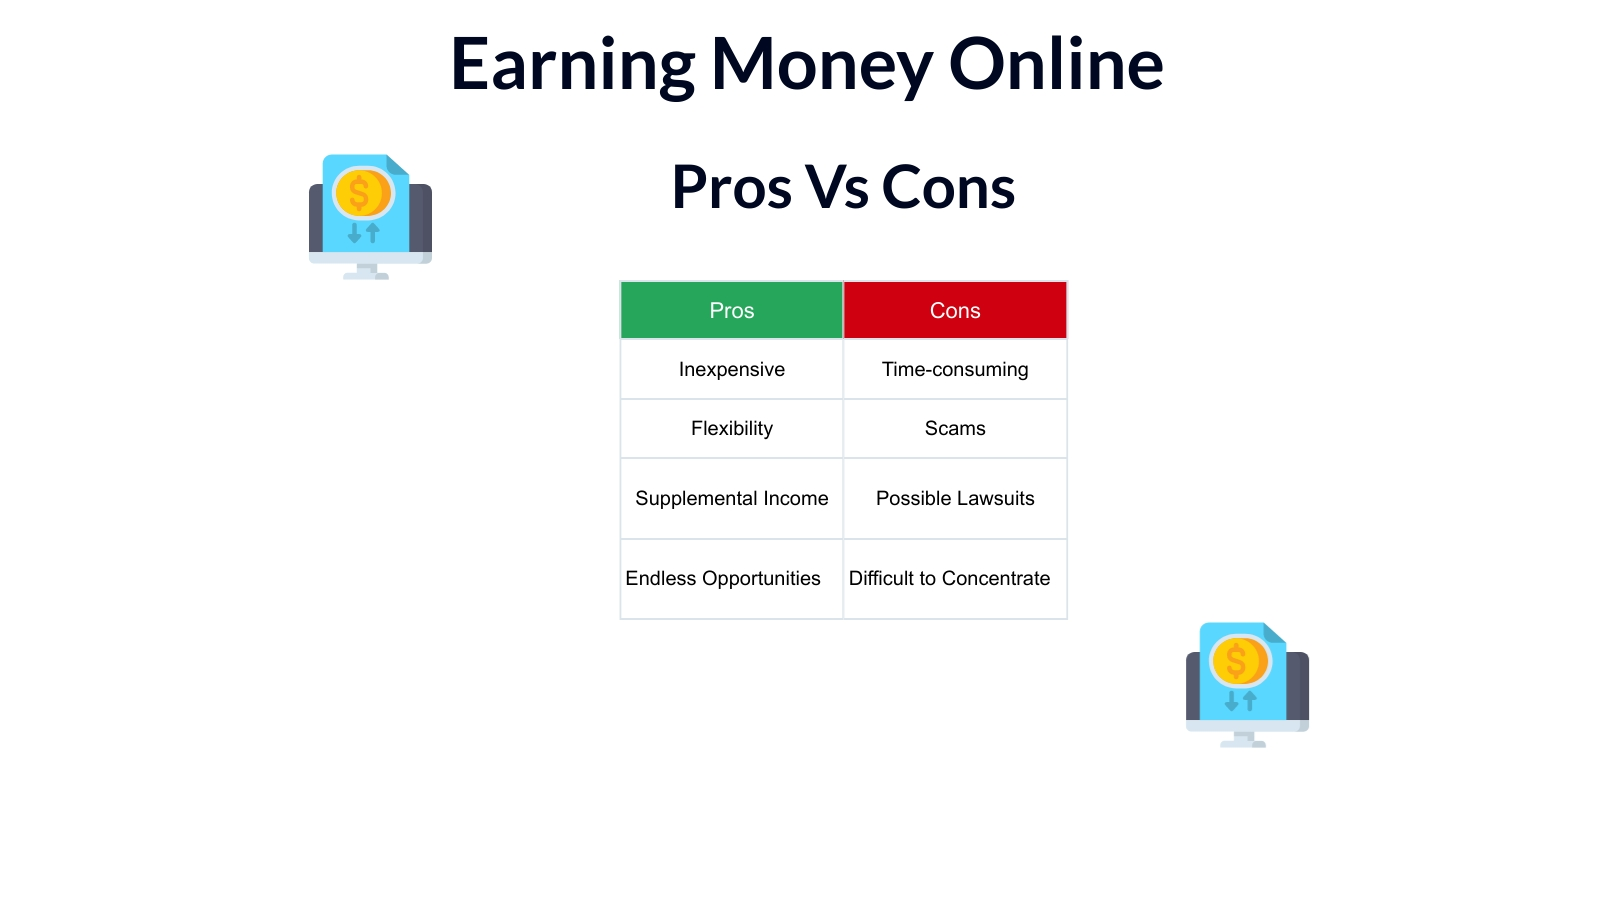 Pros and cons of earning money online.